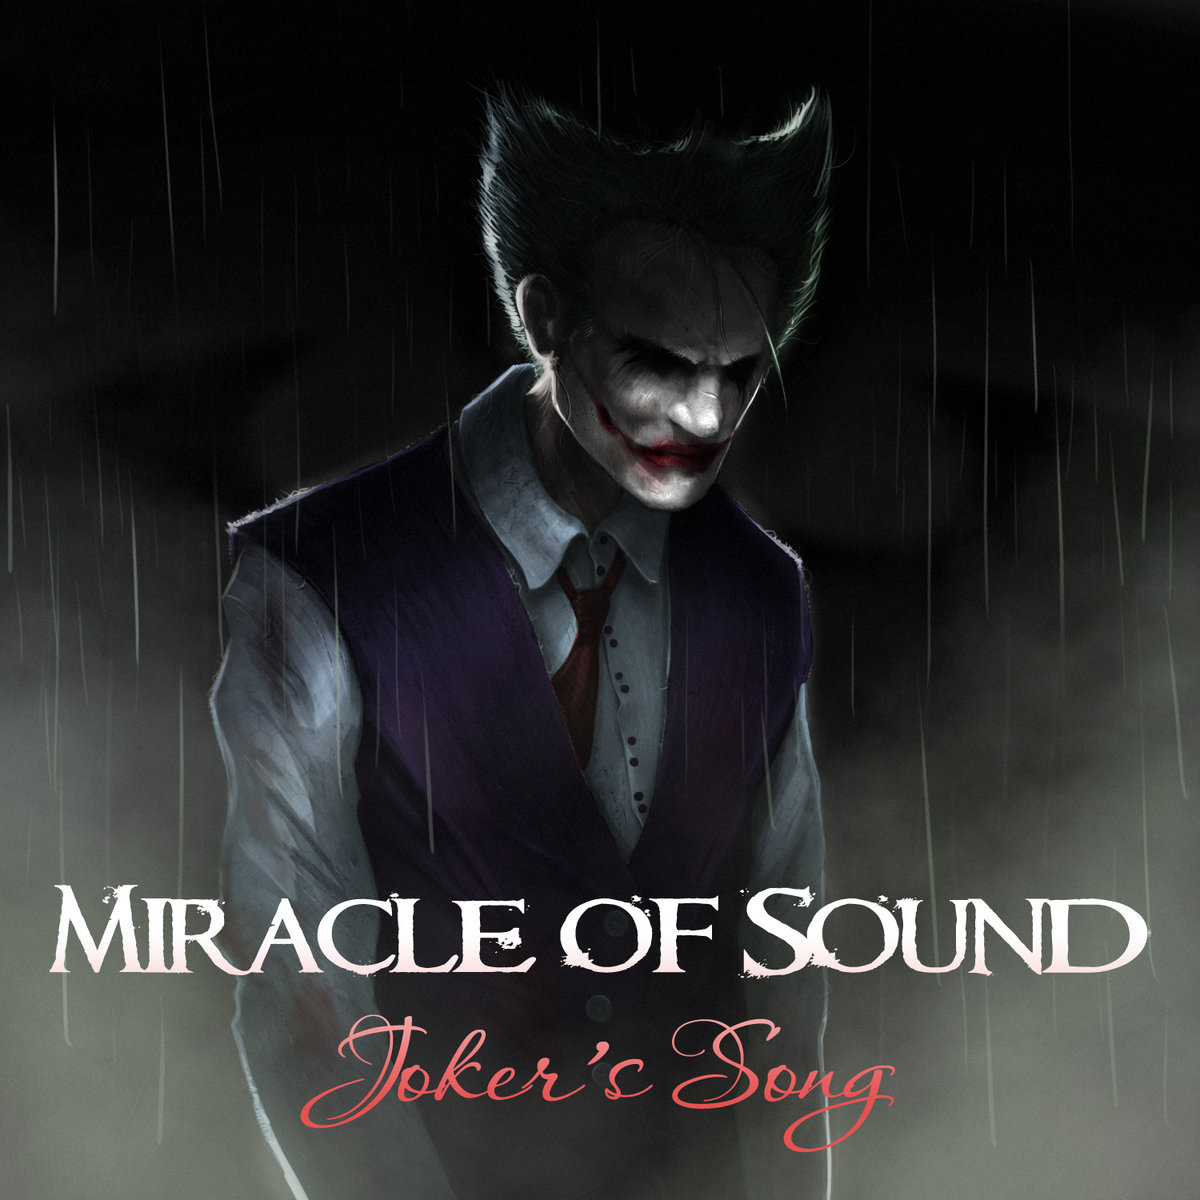 Lai Lai Jokar Song Mp3: Miracle Of Sound